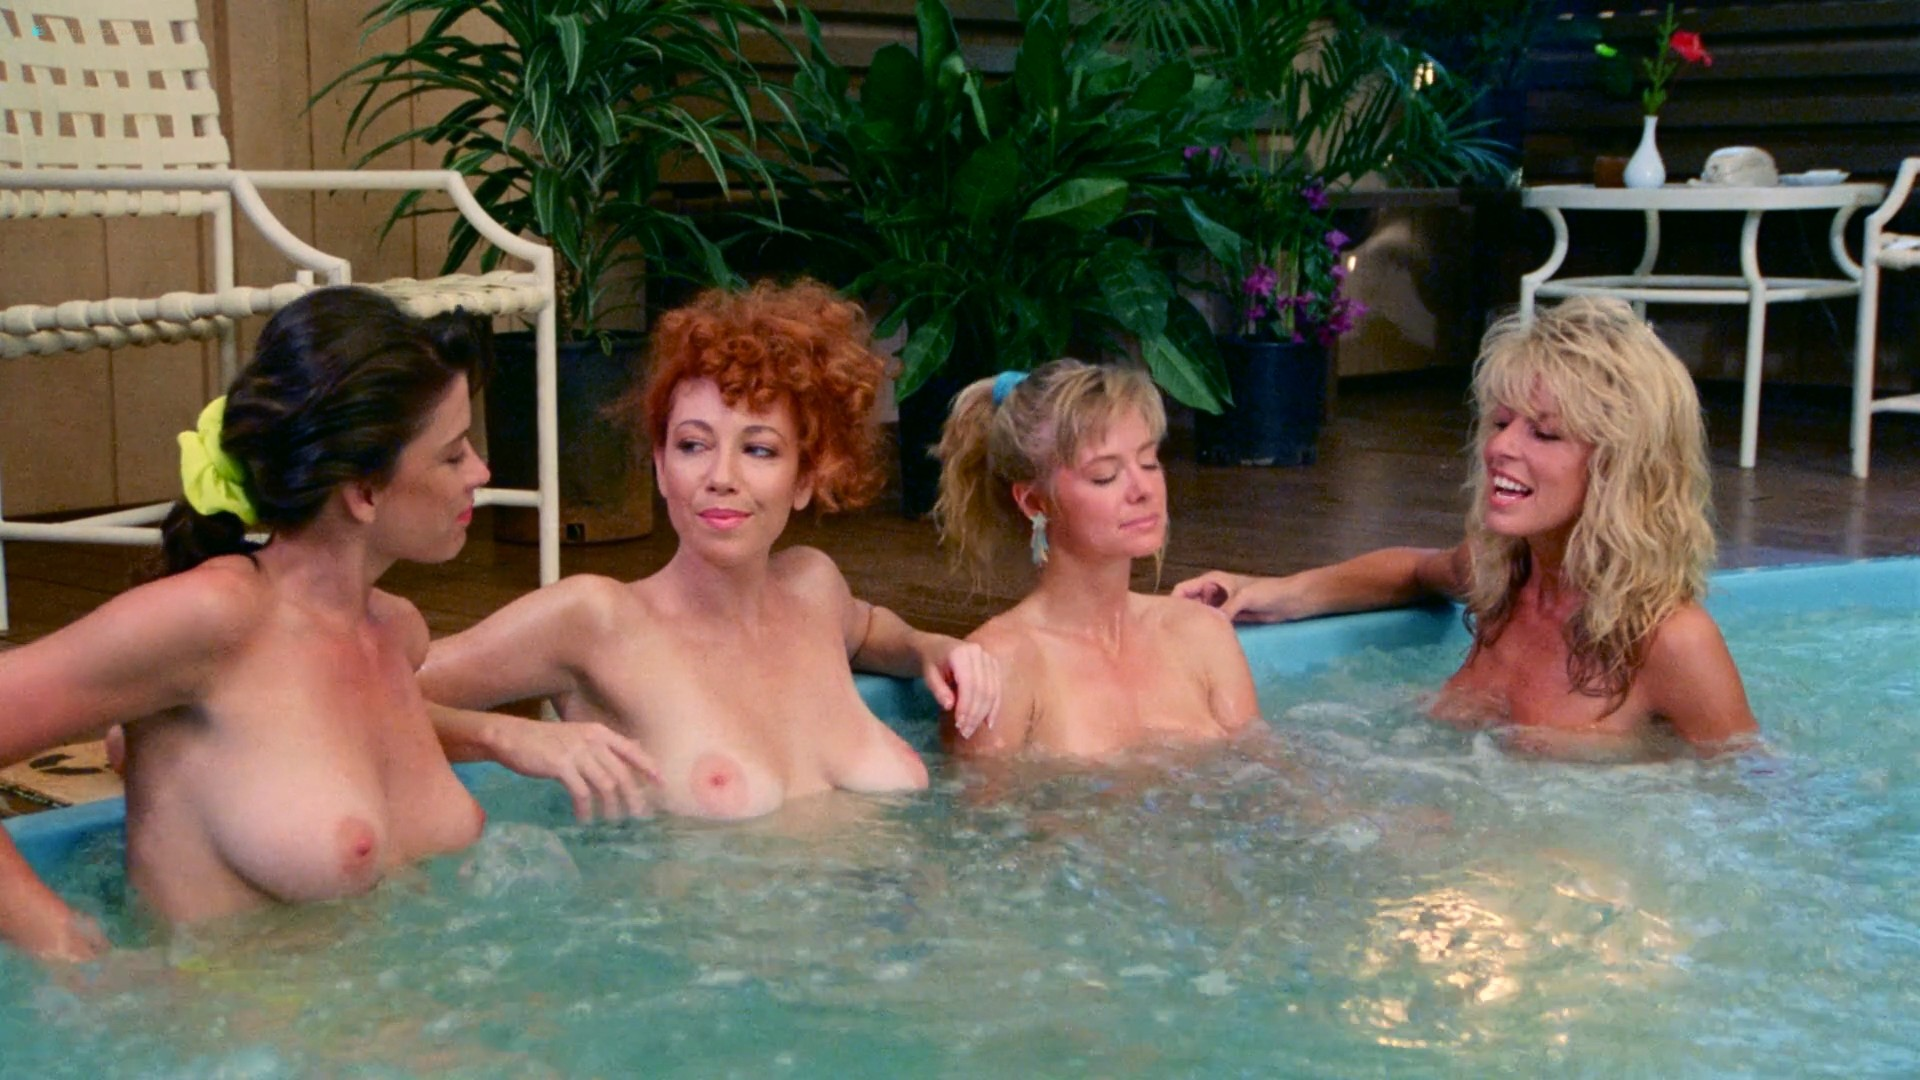 Hope Marie Carlton nude bush Teri Weigel sex in the car Maxine Wasa and other's nude - Savage Beach (1989) HD 1080p BluRay (48)